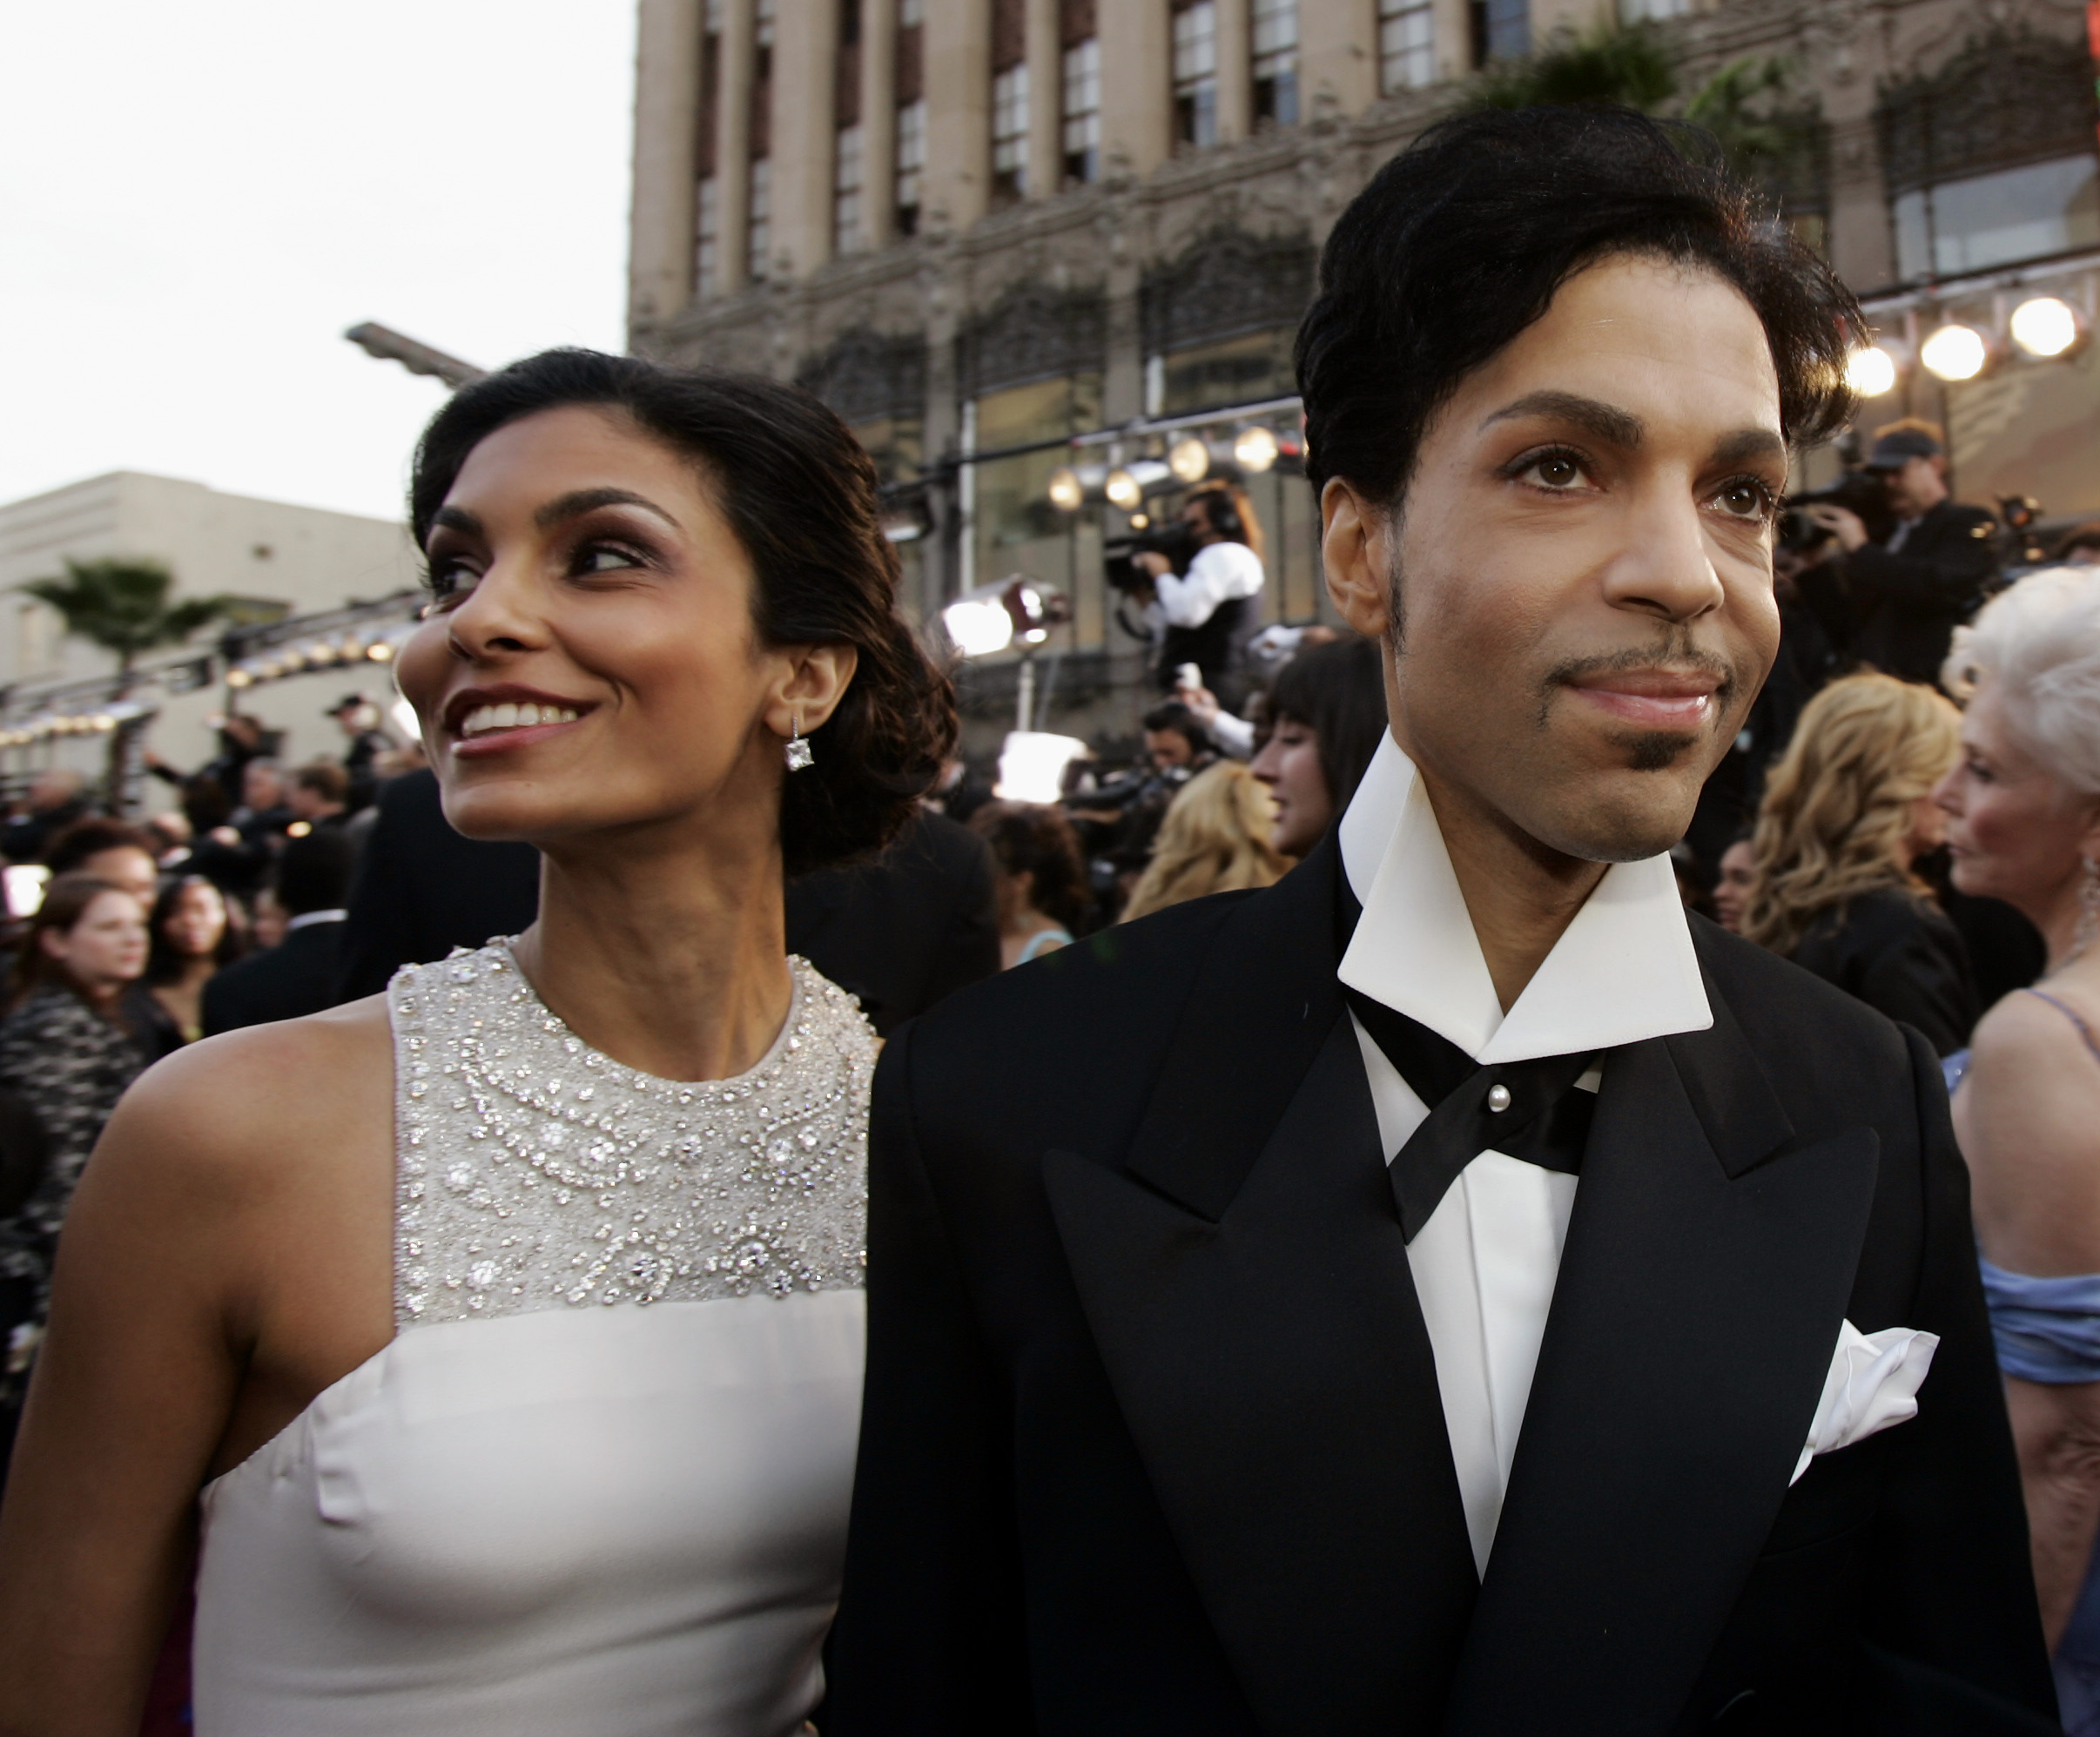 Prince arrives with his former wife Manuela Testolini for the 77th Academy Awards on Feb. 27, 2005 in Los Angeles.